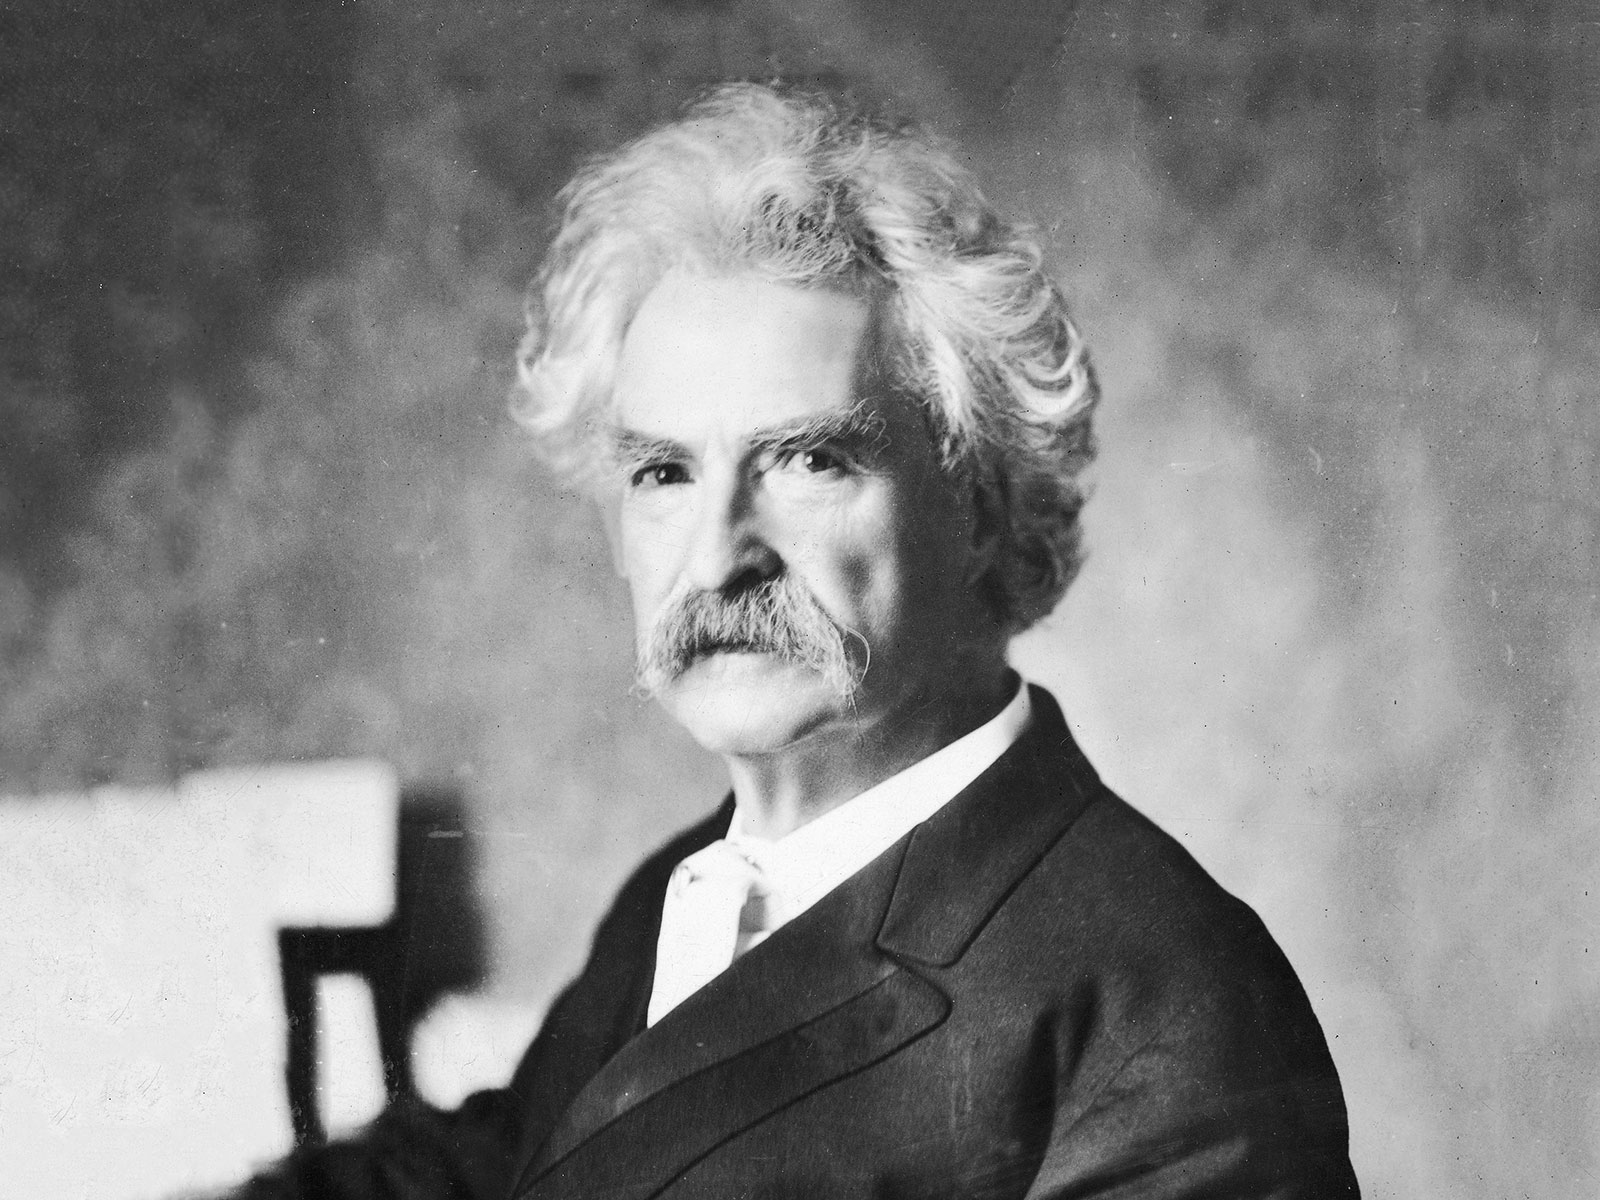 photograph of Mark Twain